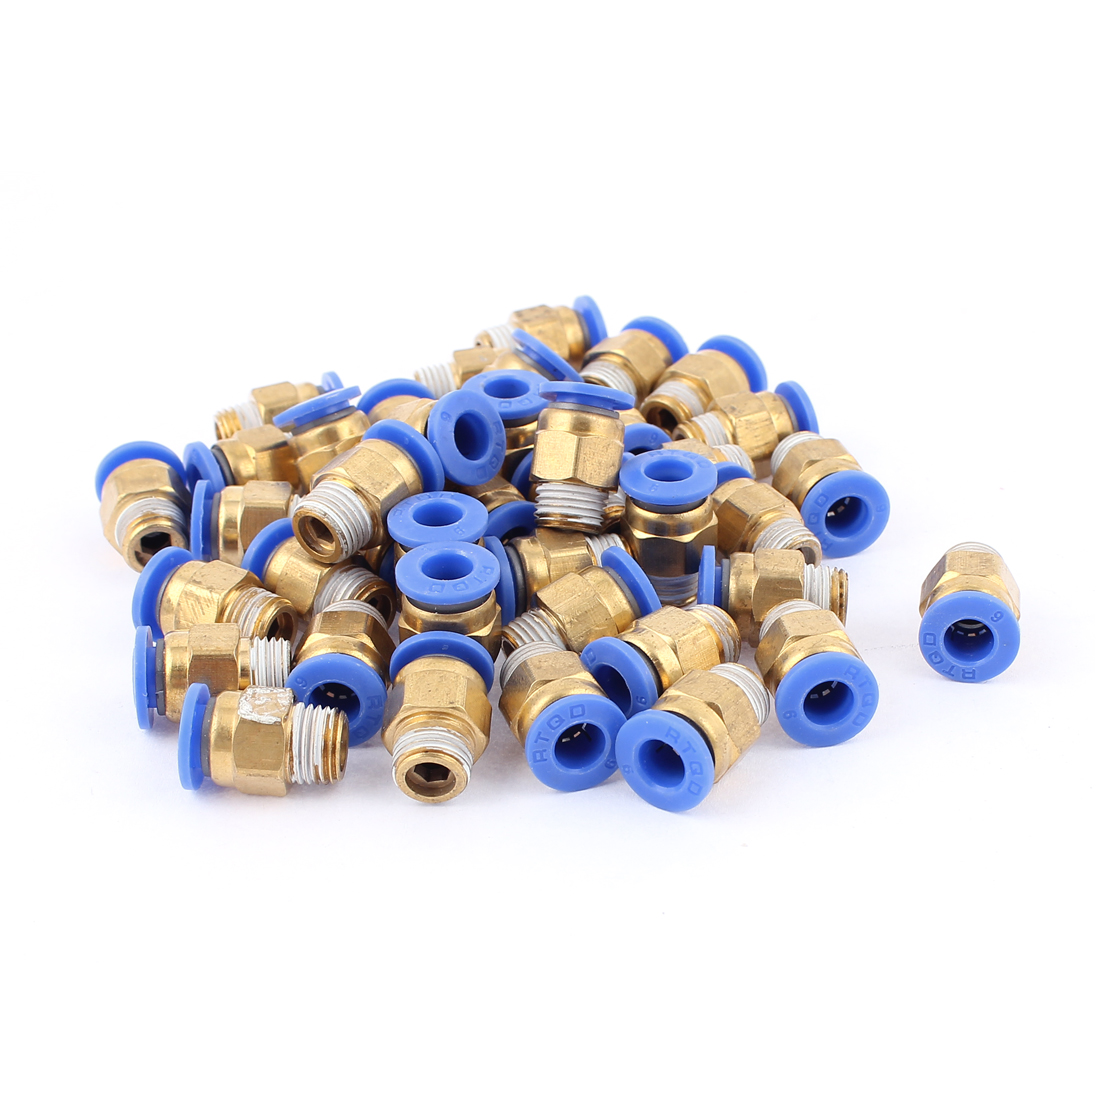 40Pcs 6mm Push in 1/8BSP Male Thread Quick Connector Pneumatic Air Fittings